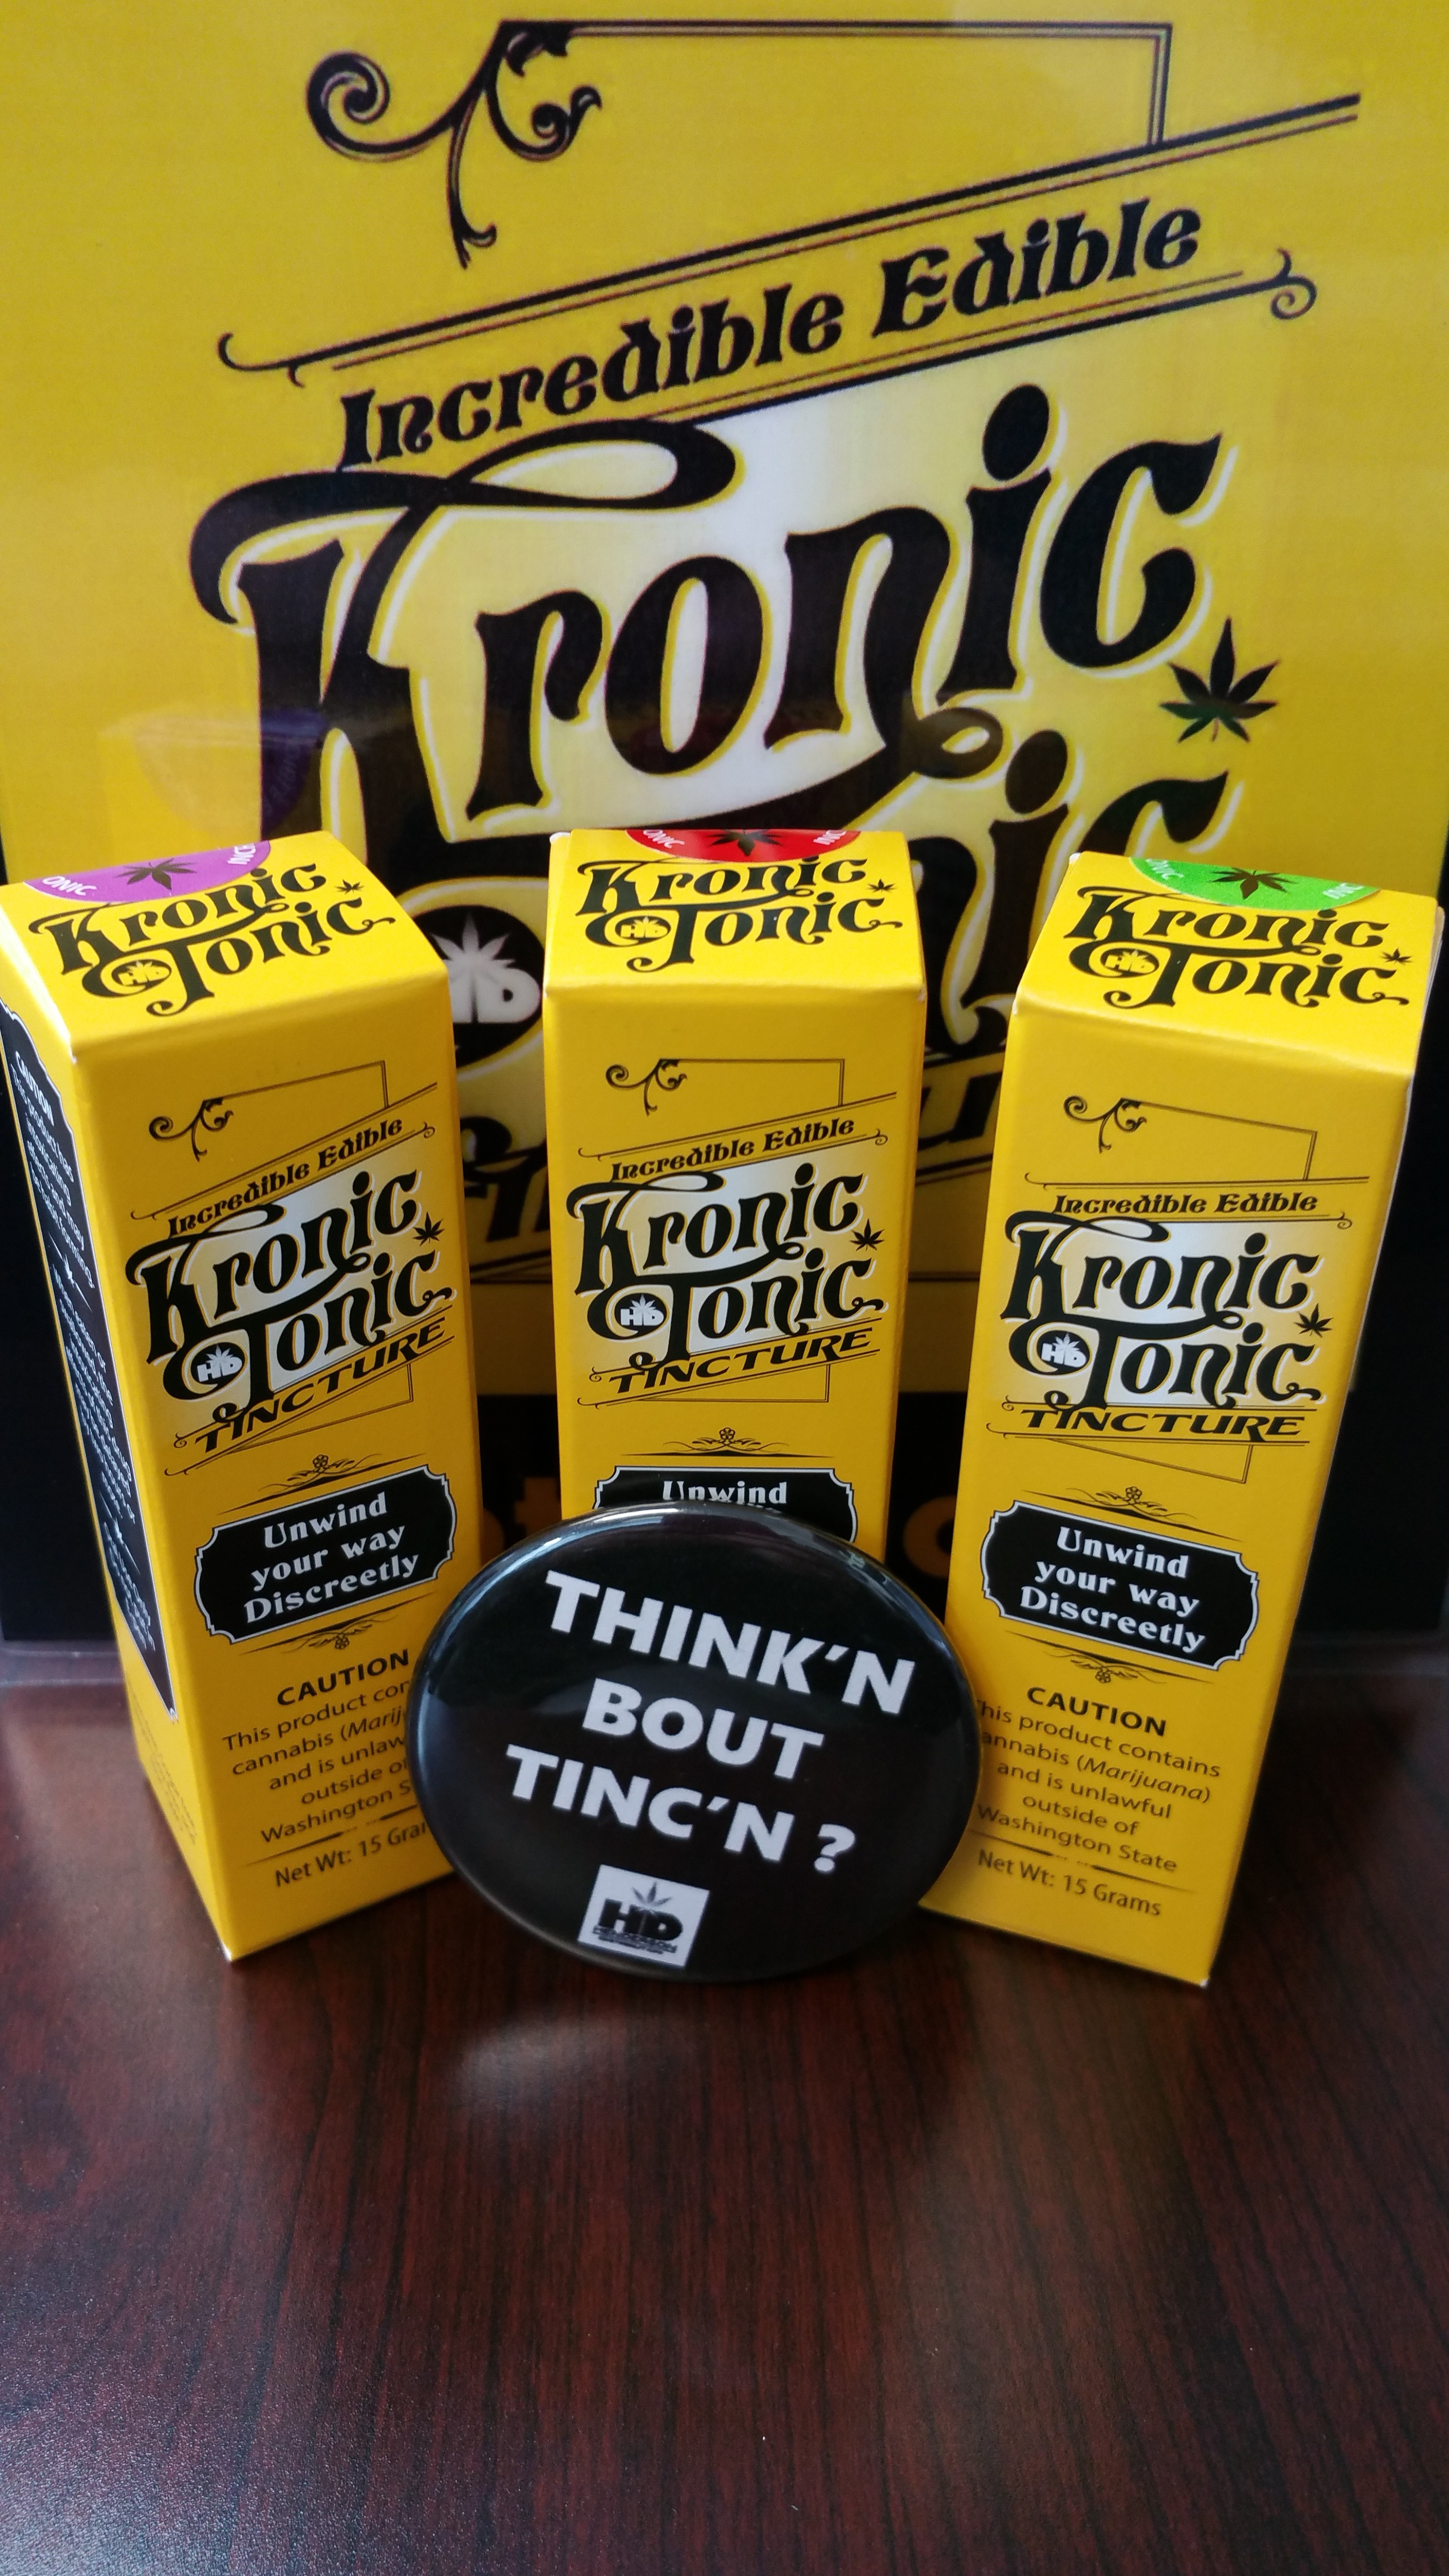 HD Kronic Indica Tonic Product image